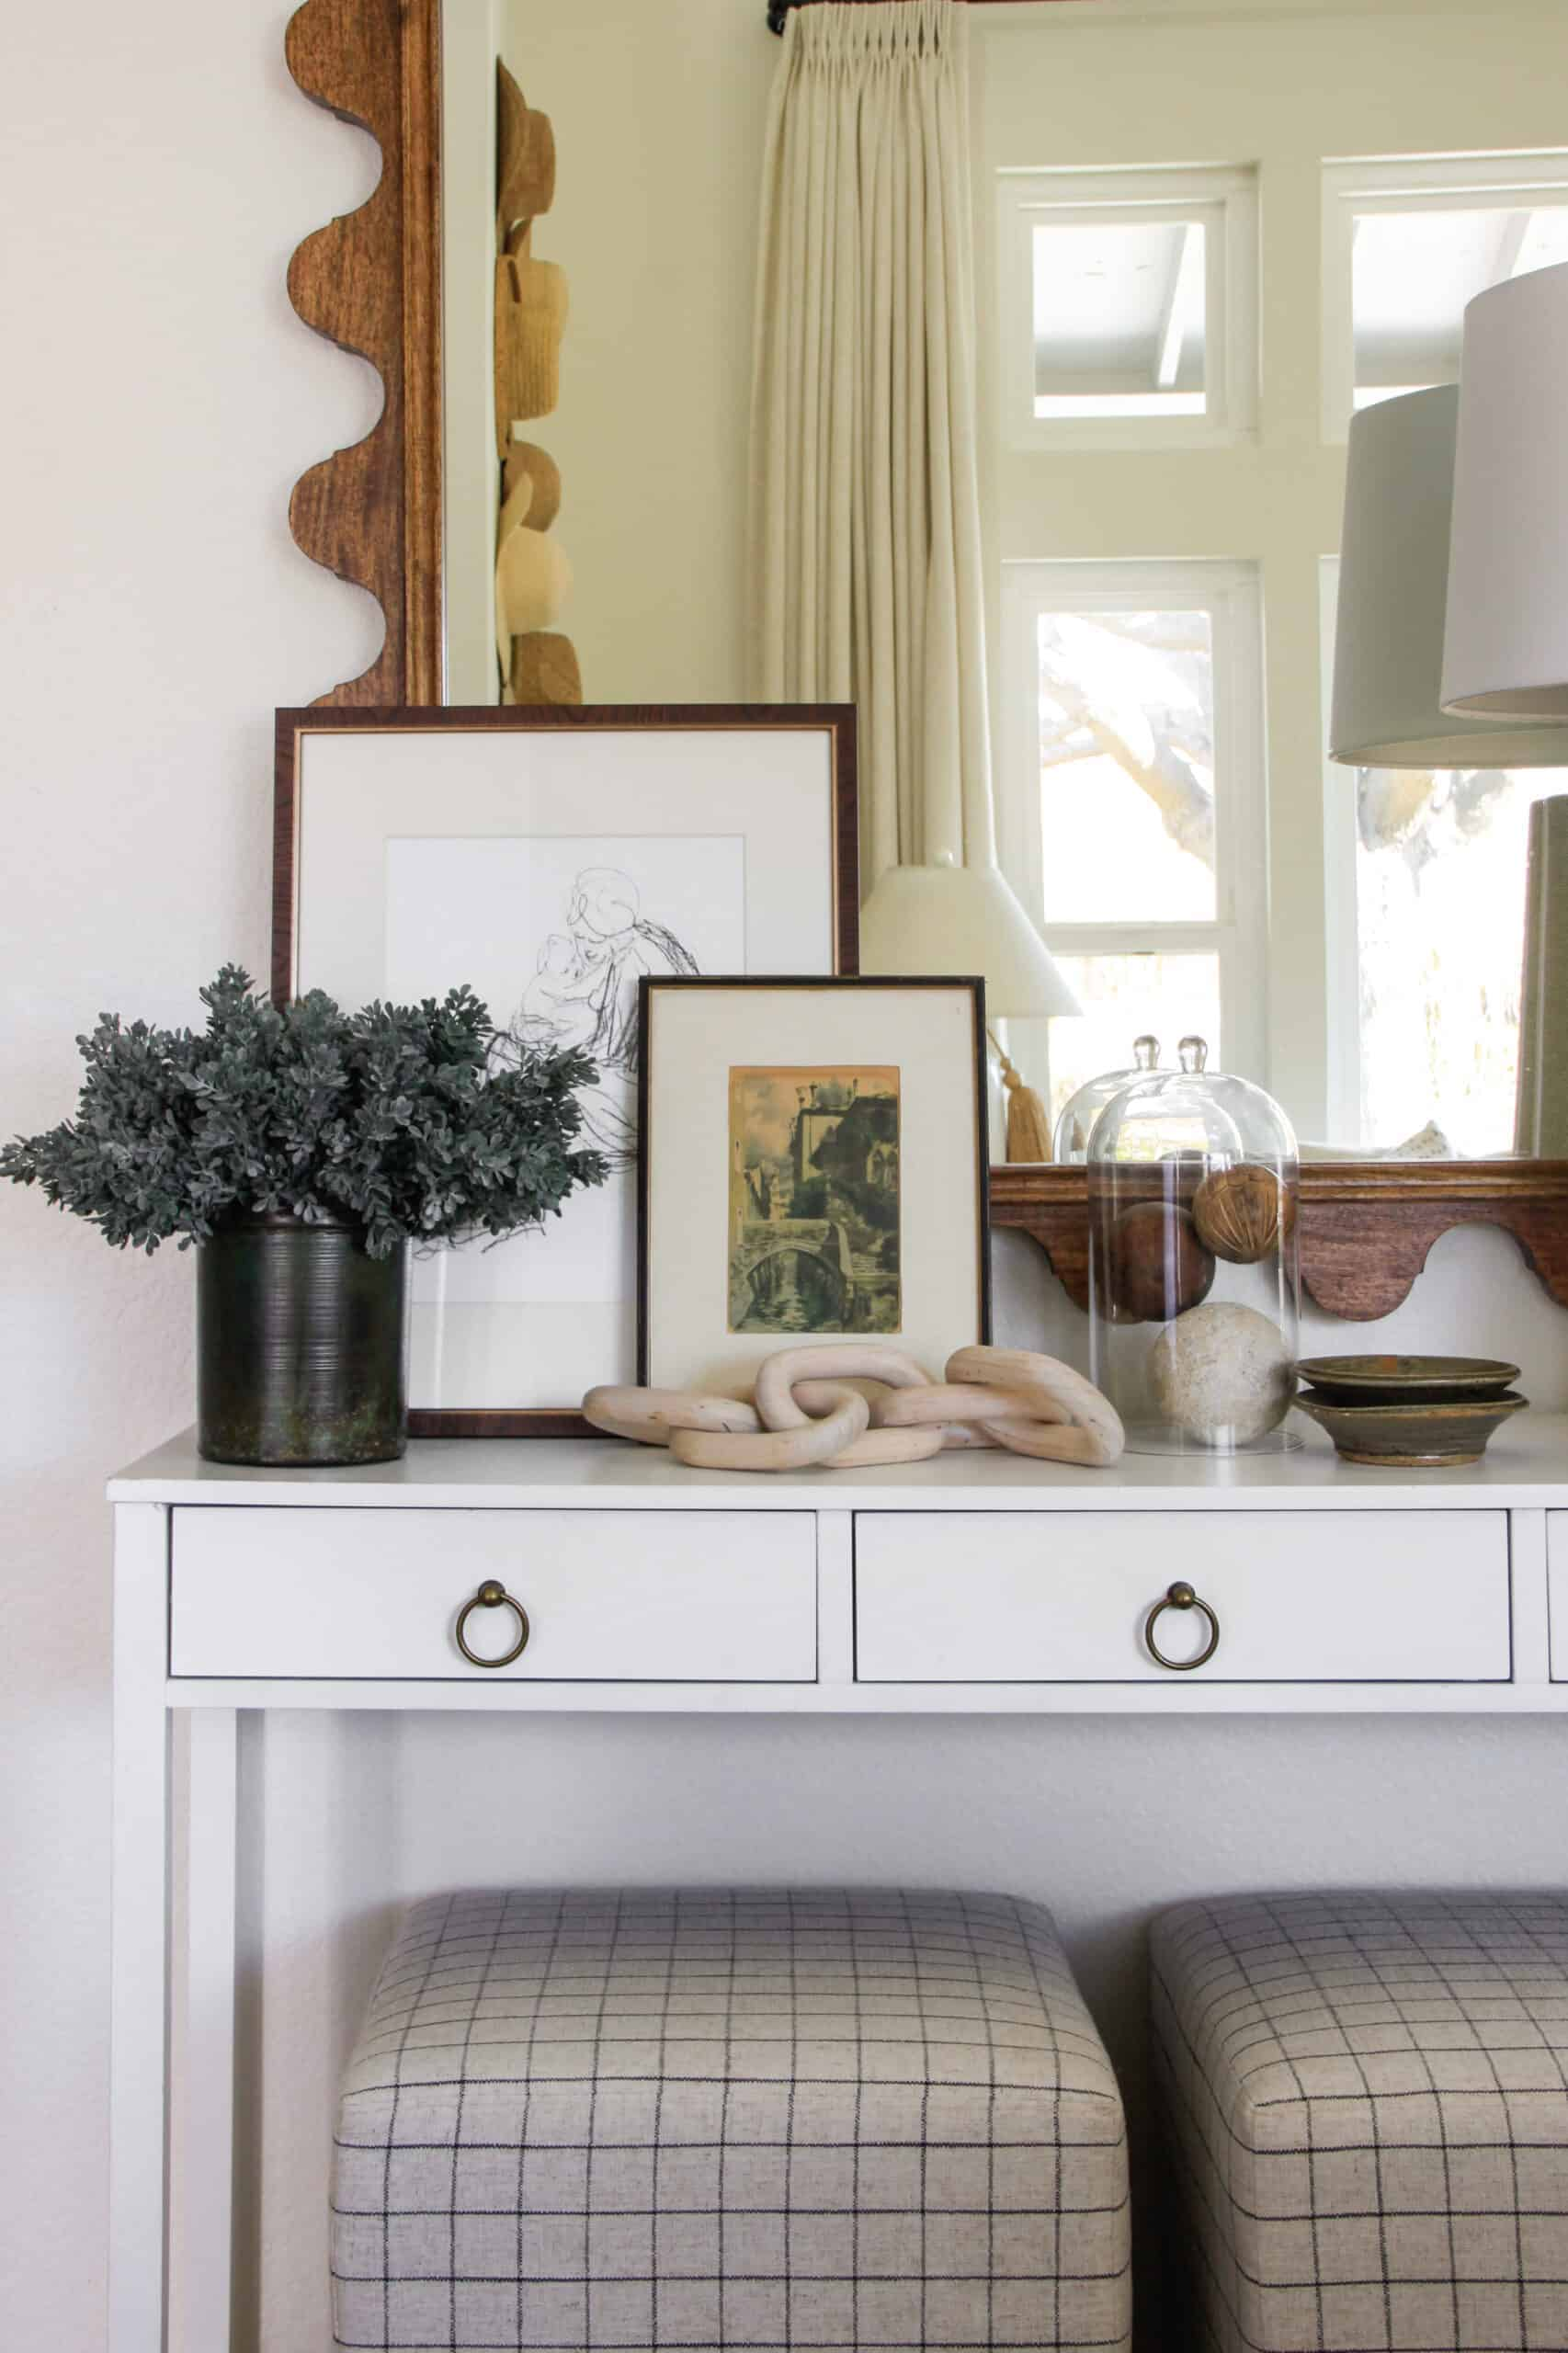 console table with figure drawings styled